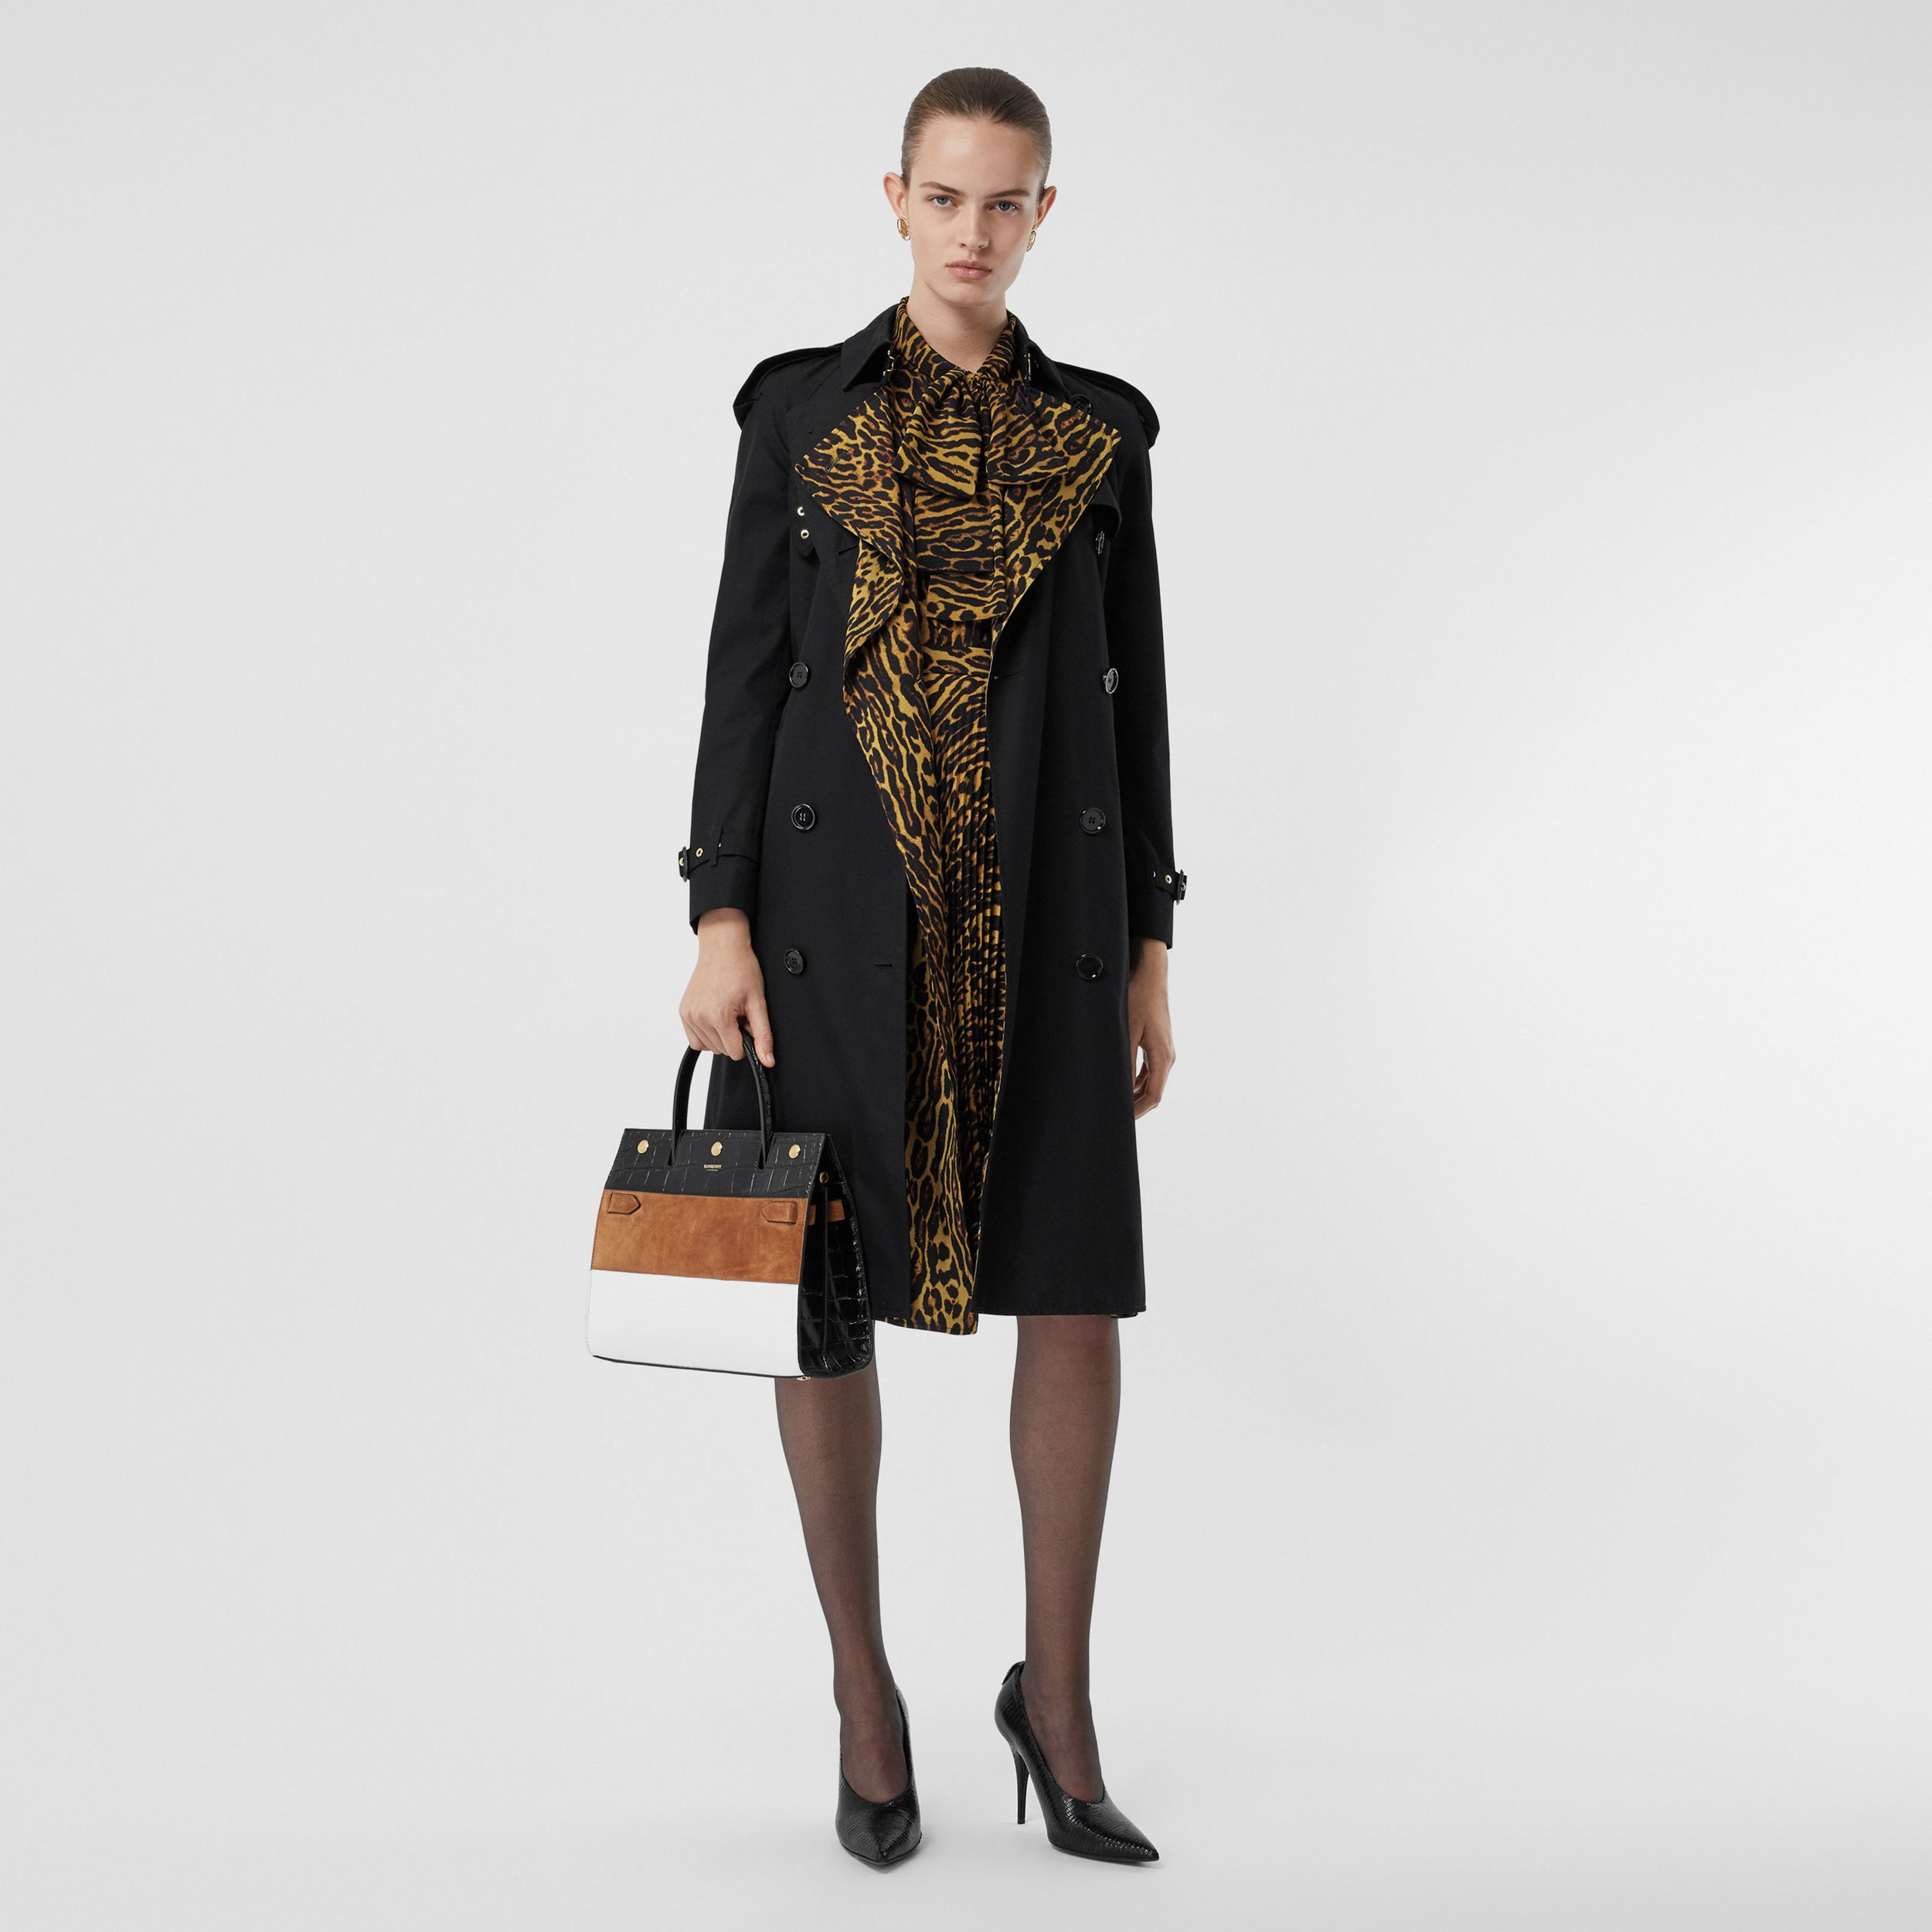 Leopard Print-lined Cotton Gabardine Trench Coat in Black - Women | Burberry - 1